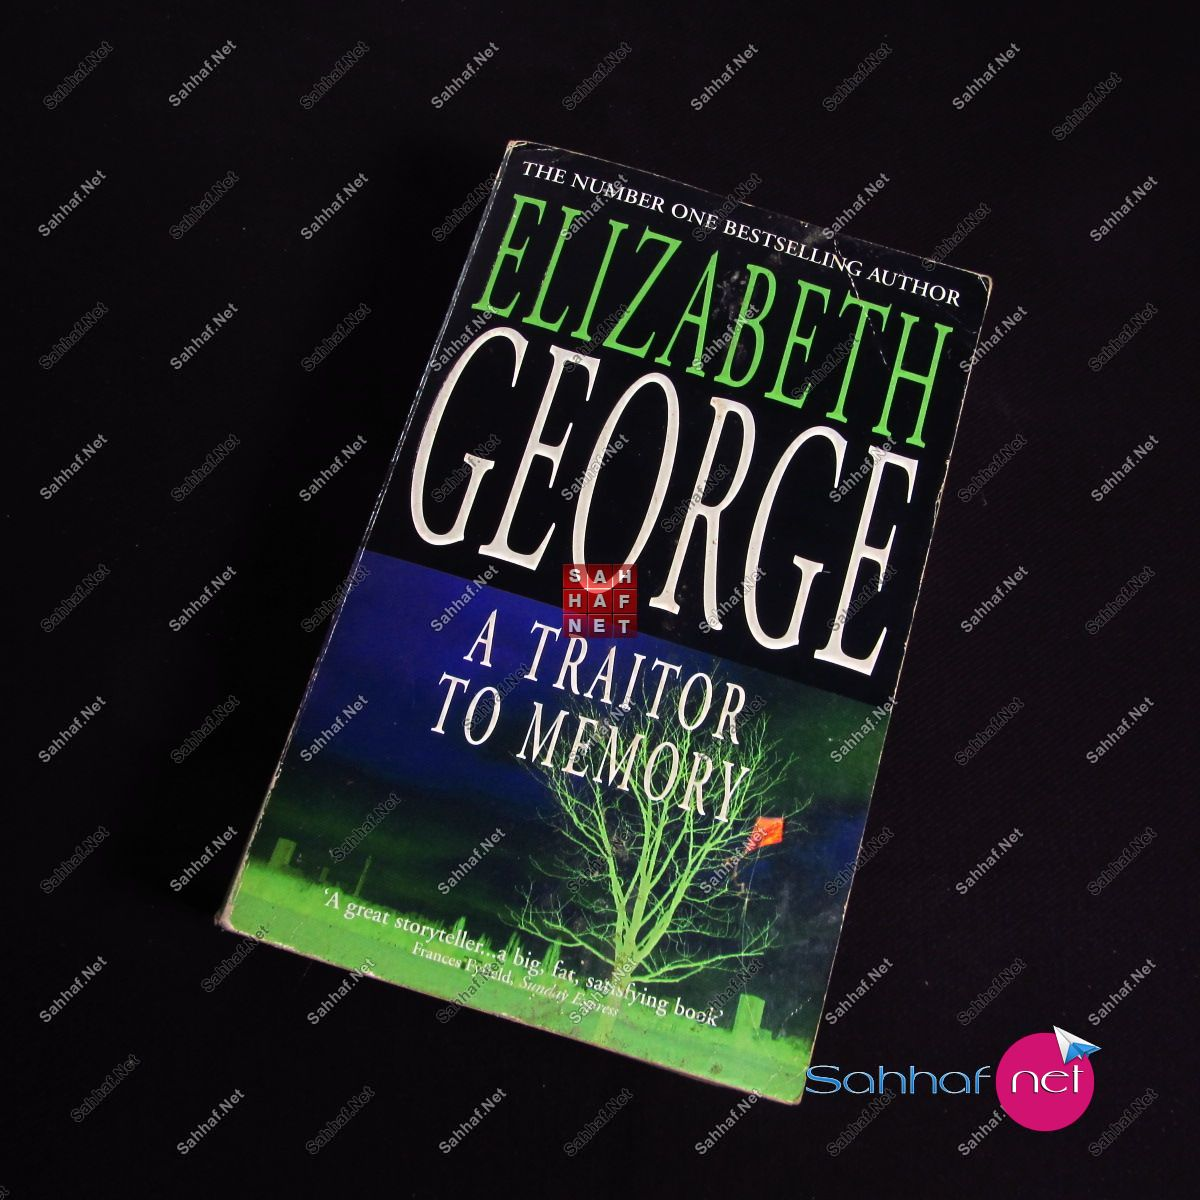 A TRAITOR TO MEMORY – Elizabeth George Kitap